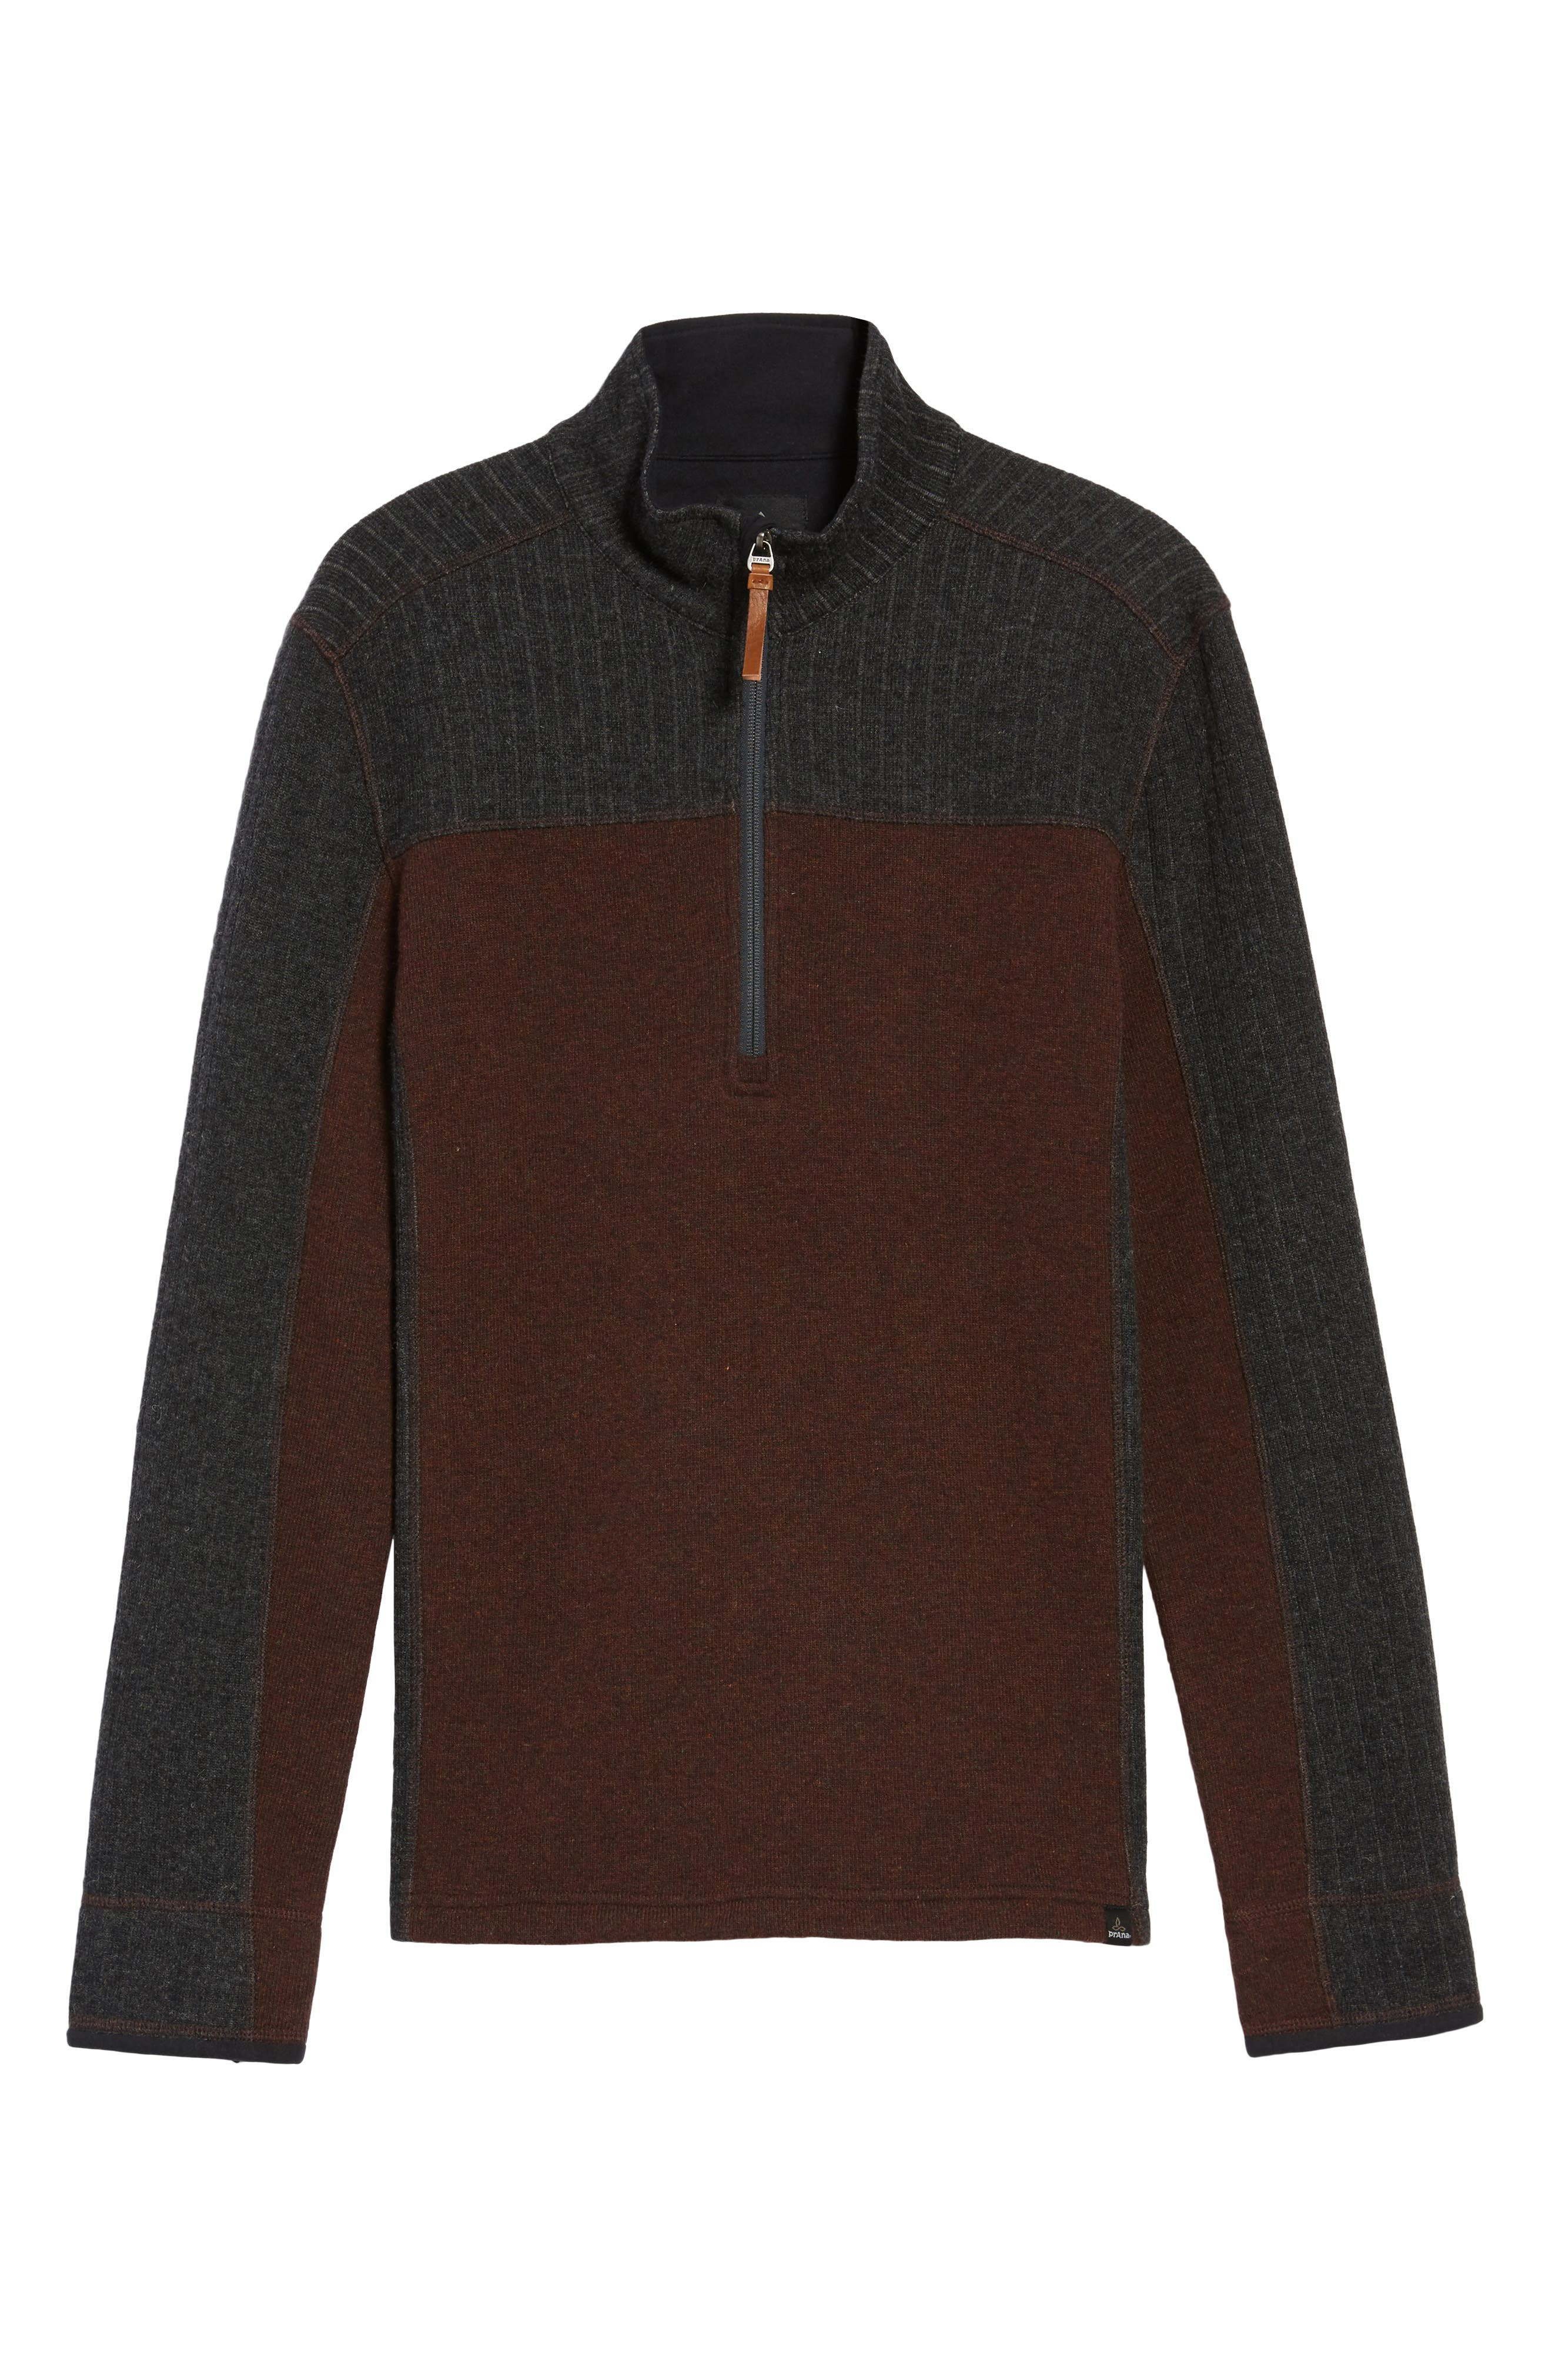 Wentworth Quarter Zip Pullover,                             Alternate thumbnail 5, color,                             Cocoa